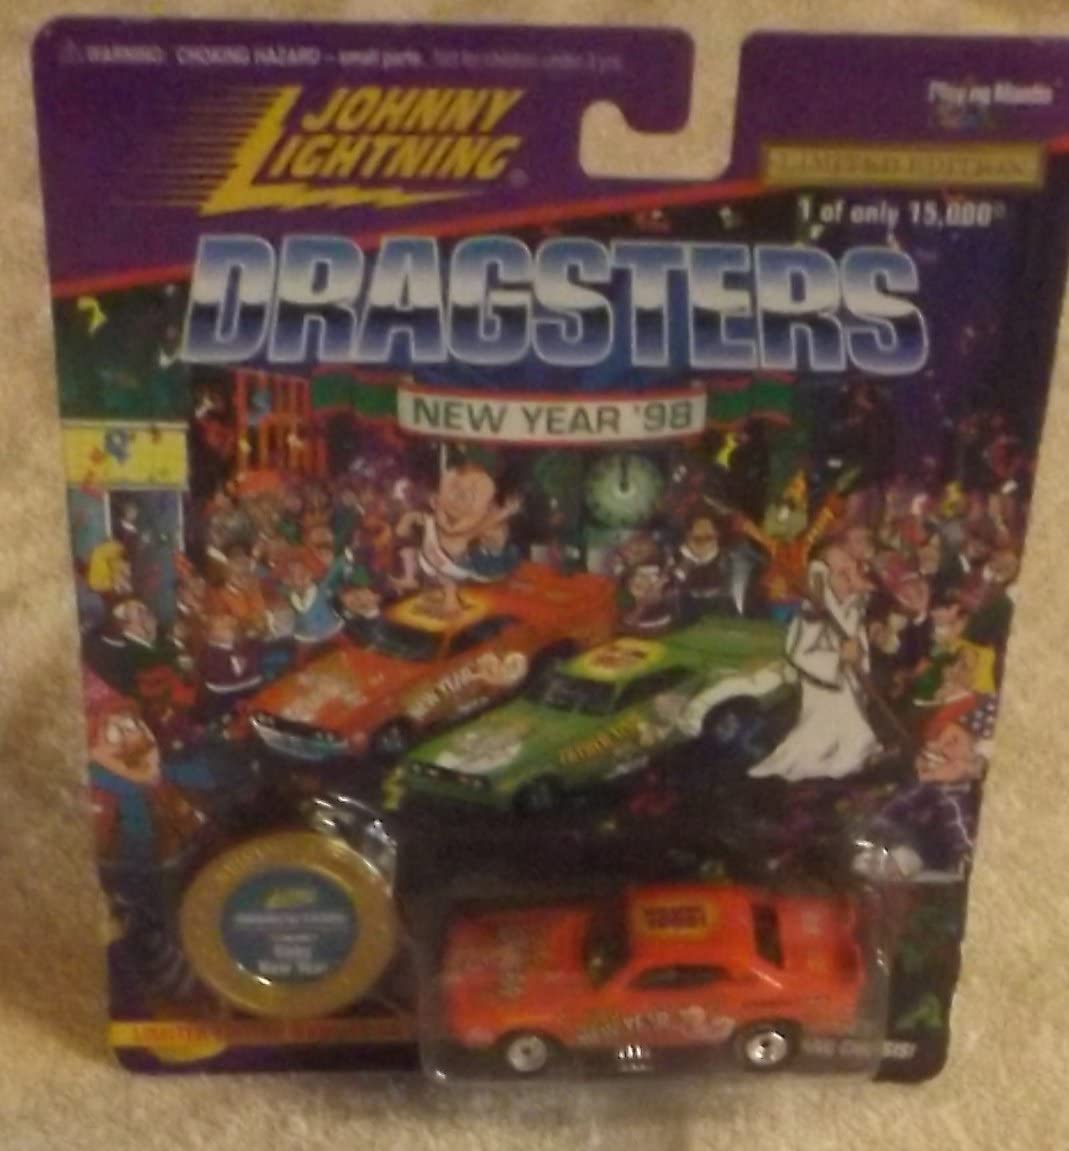 BABY NEW YEAR * RED * Johnny Lightning DRAGSTERS NEW YEAR '98 Limited Edition Die Cast Vehicle * 1 of only 15,000 *